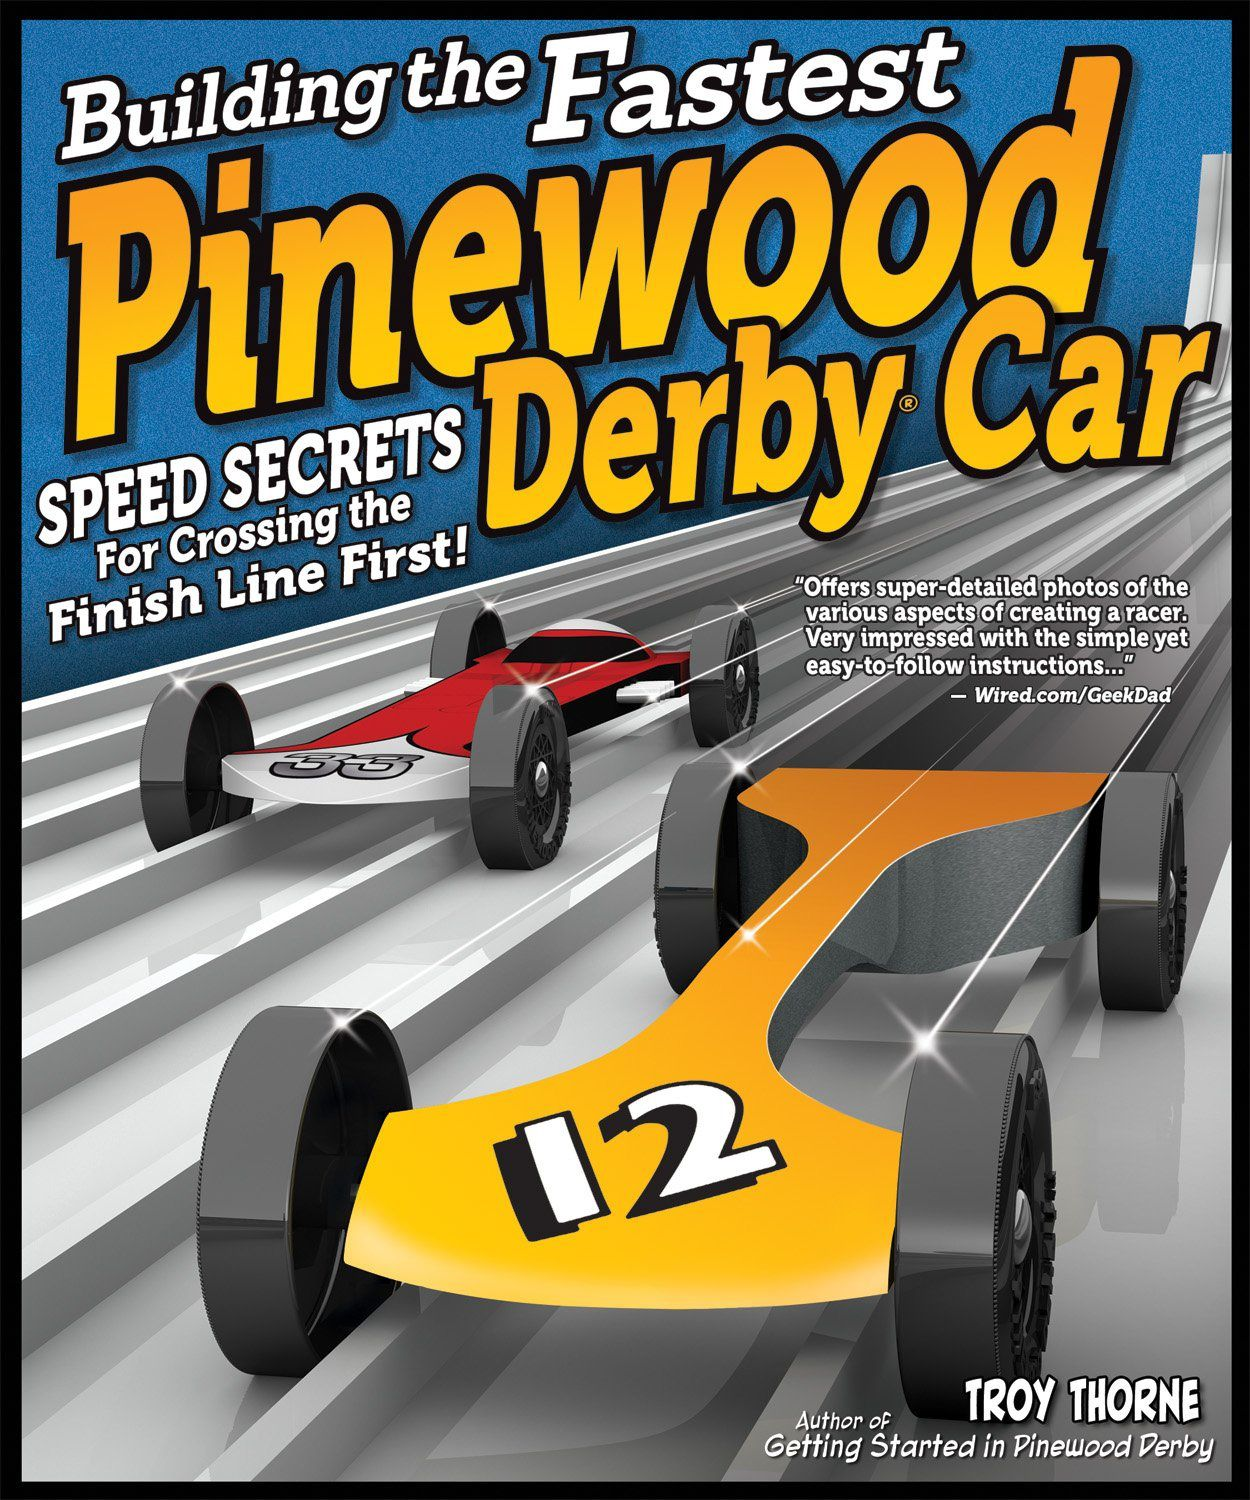 001 Fascinating Fast Pinewood Derby Car Template High Definition  Templates Design FastestFull